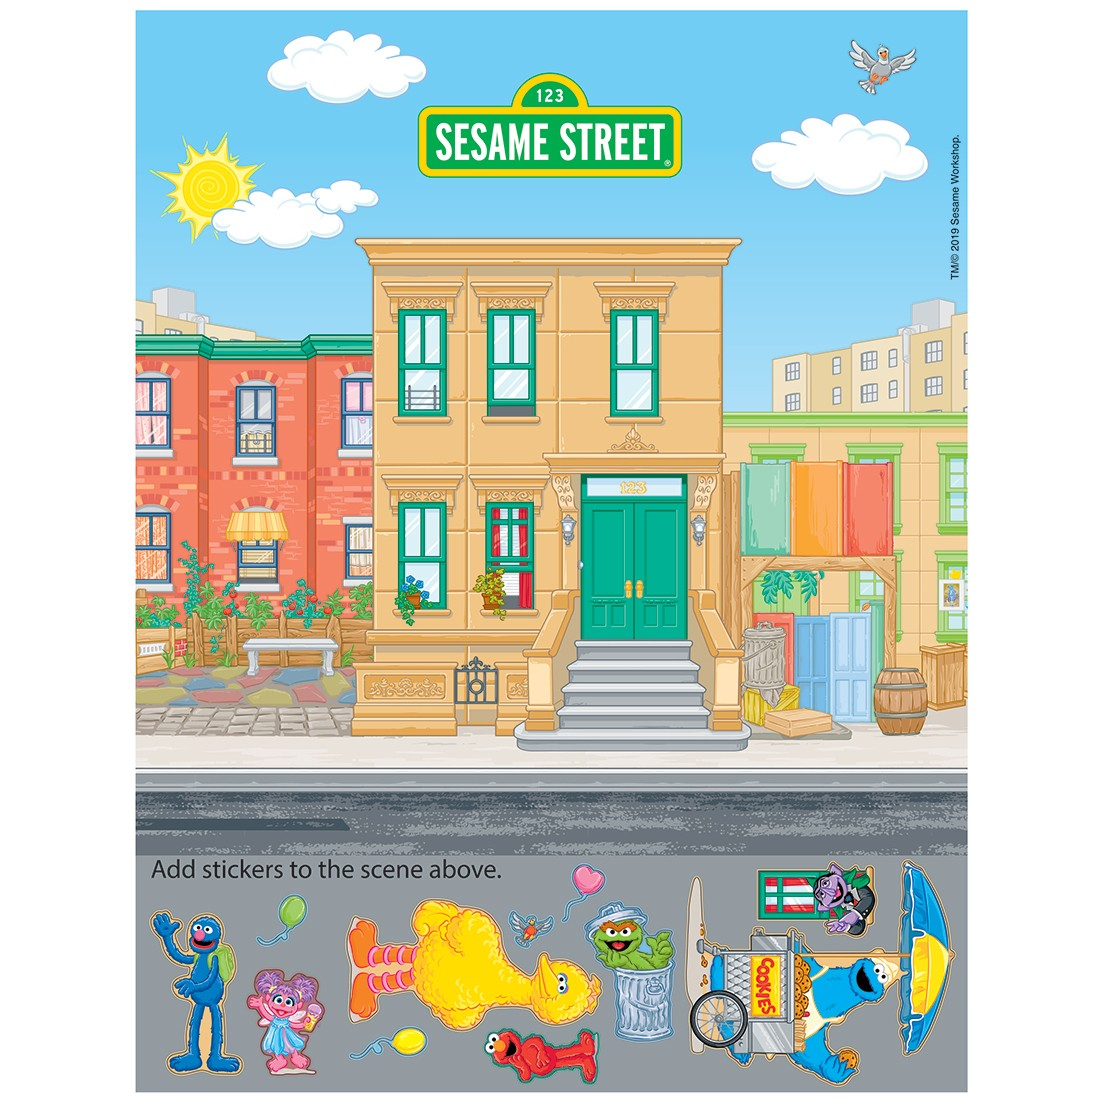 Sesame Street Sticker Activity Sheets [image]